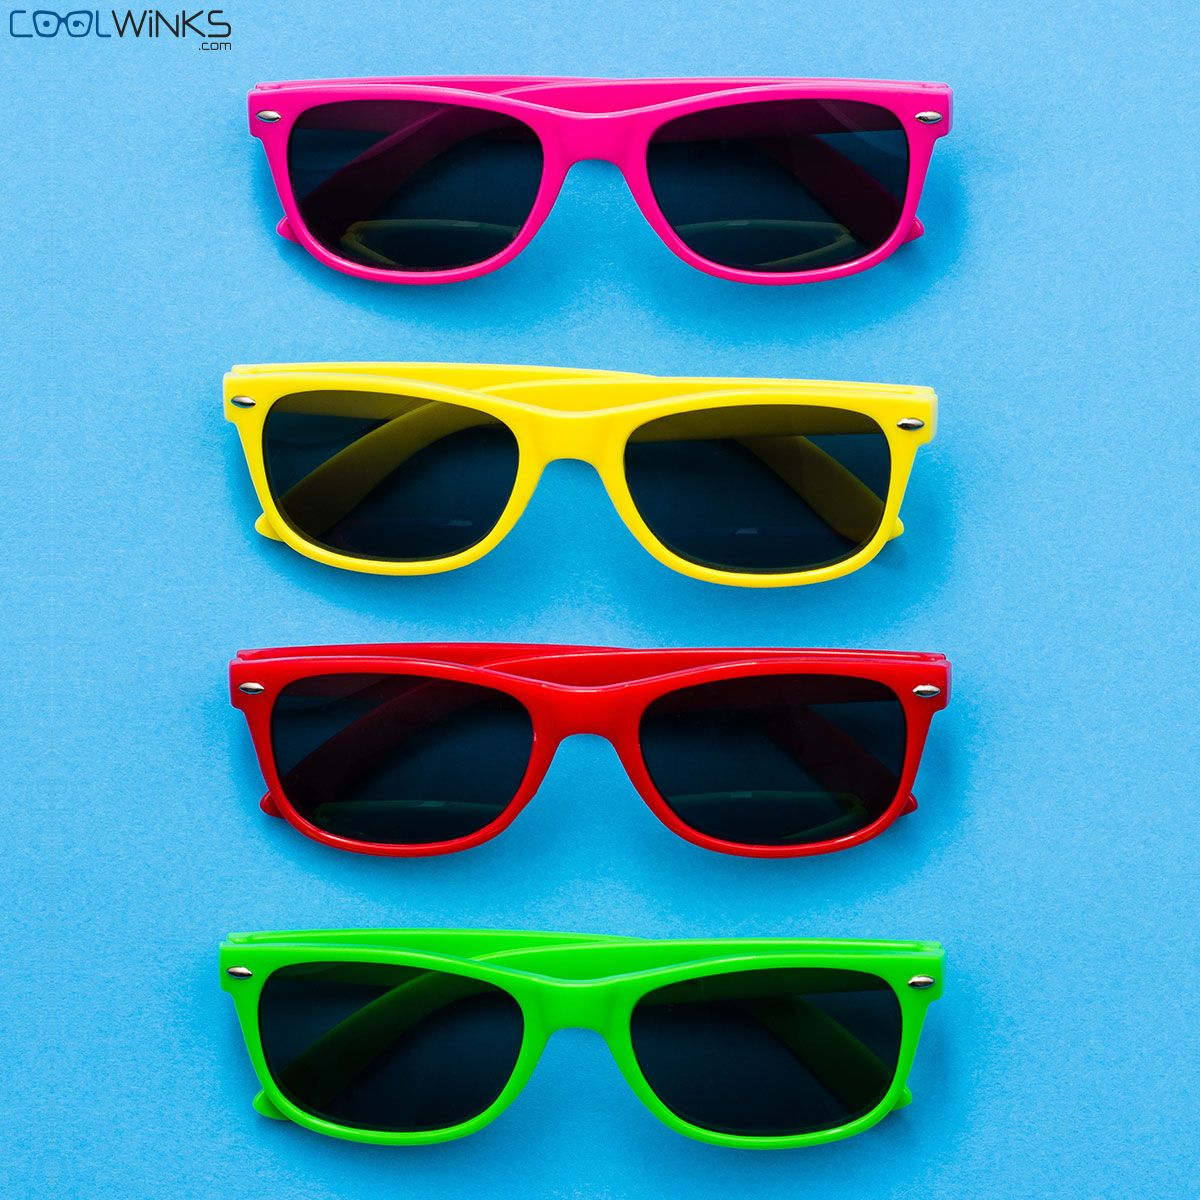 2cdc26a22bbe5 FLAT 60% OFF on Branded Sunglasses  Coolwinks! Latest Collection starts   Rs.169.Hurry! Shop Now.